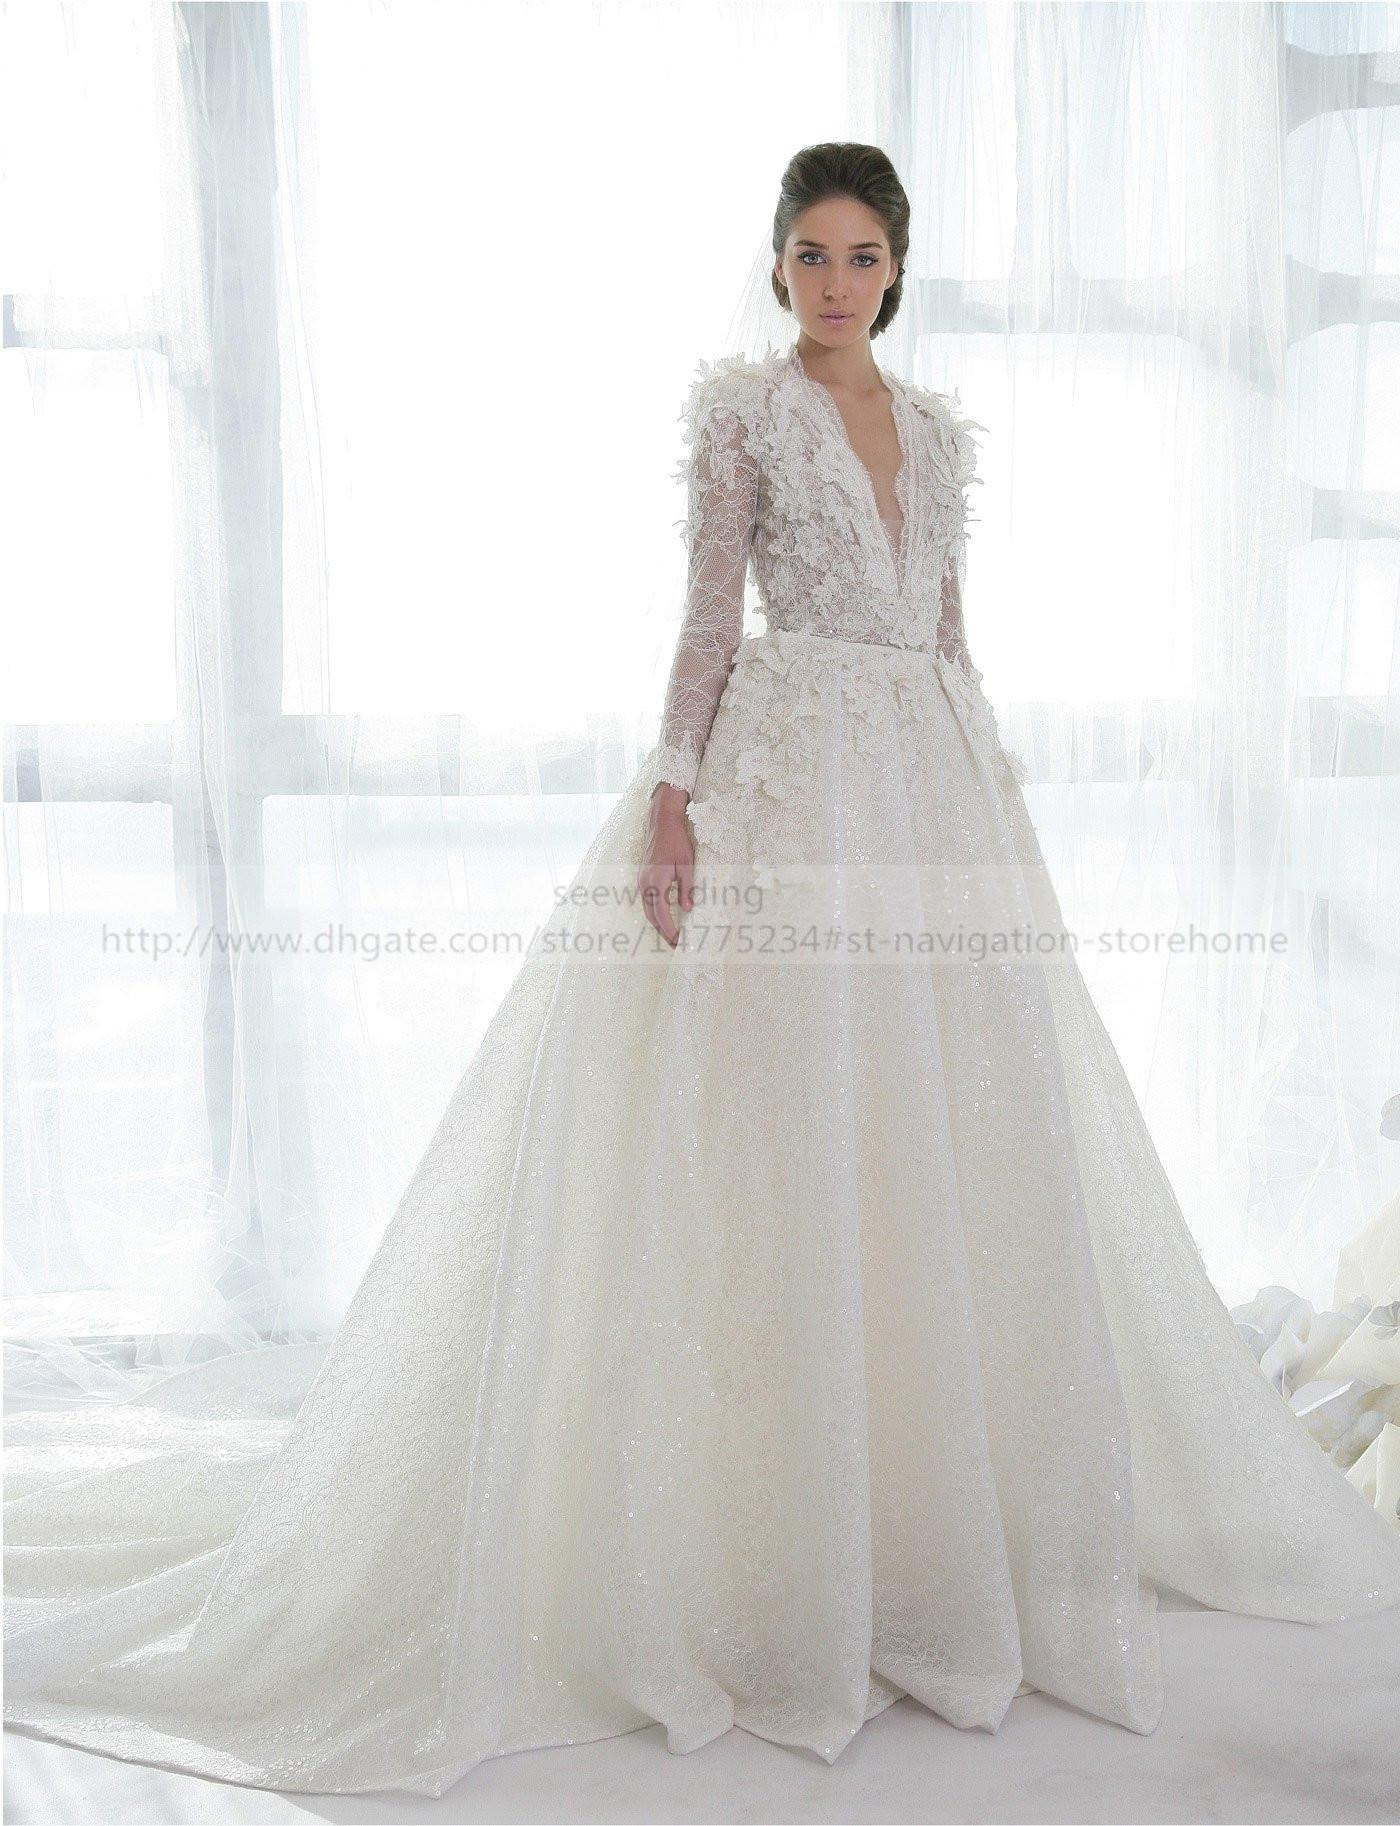 Wedding dresses in lebanon beirut dress blog edin for Lebanese wedding dress designers